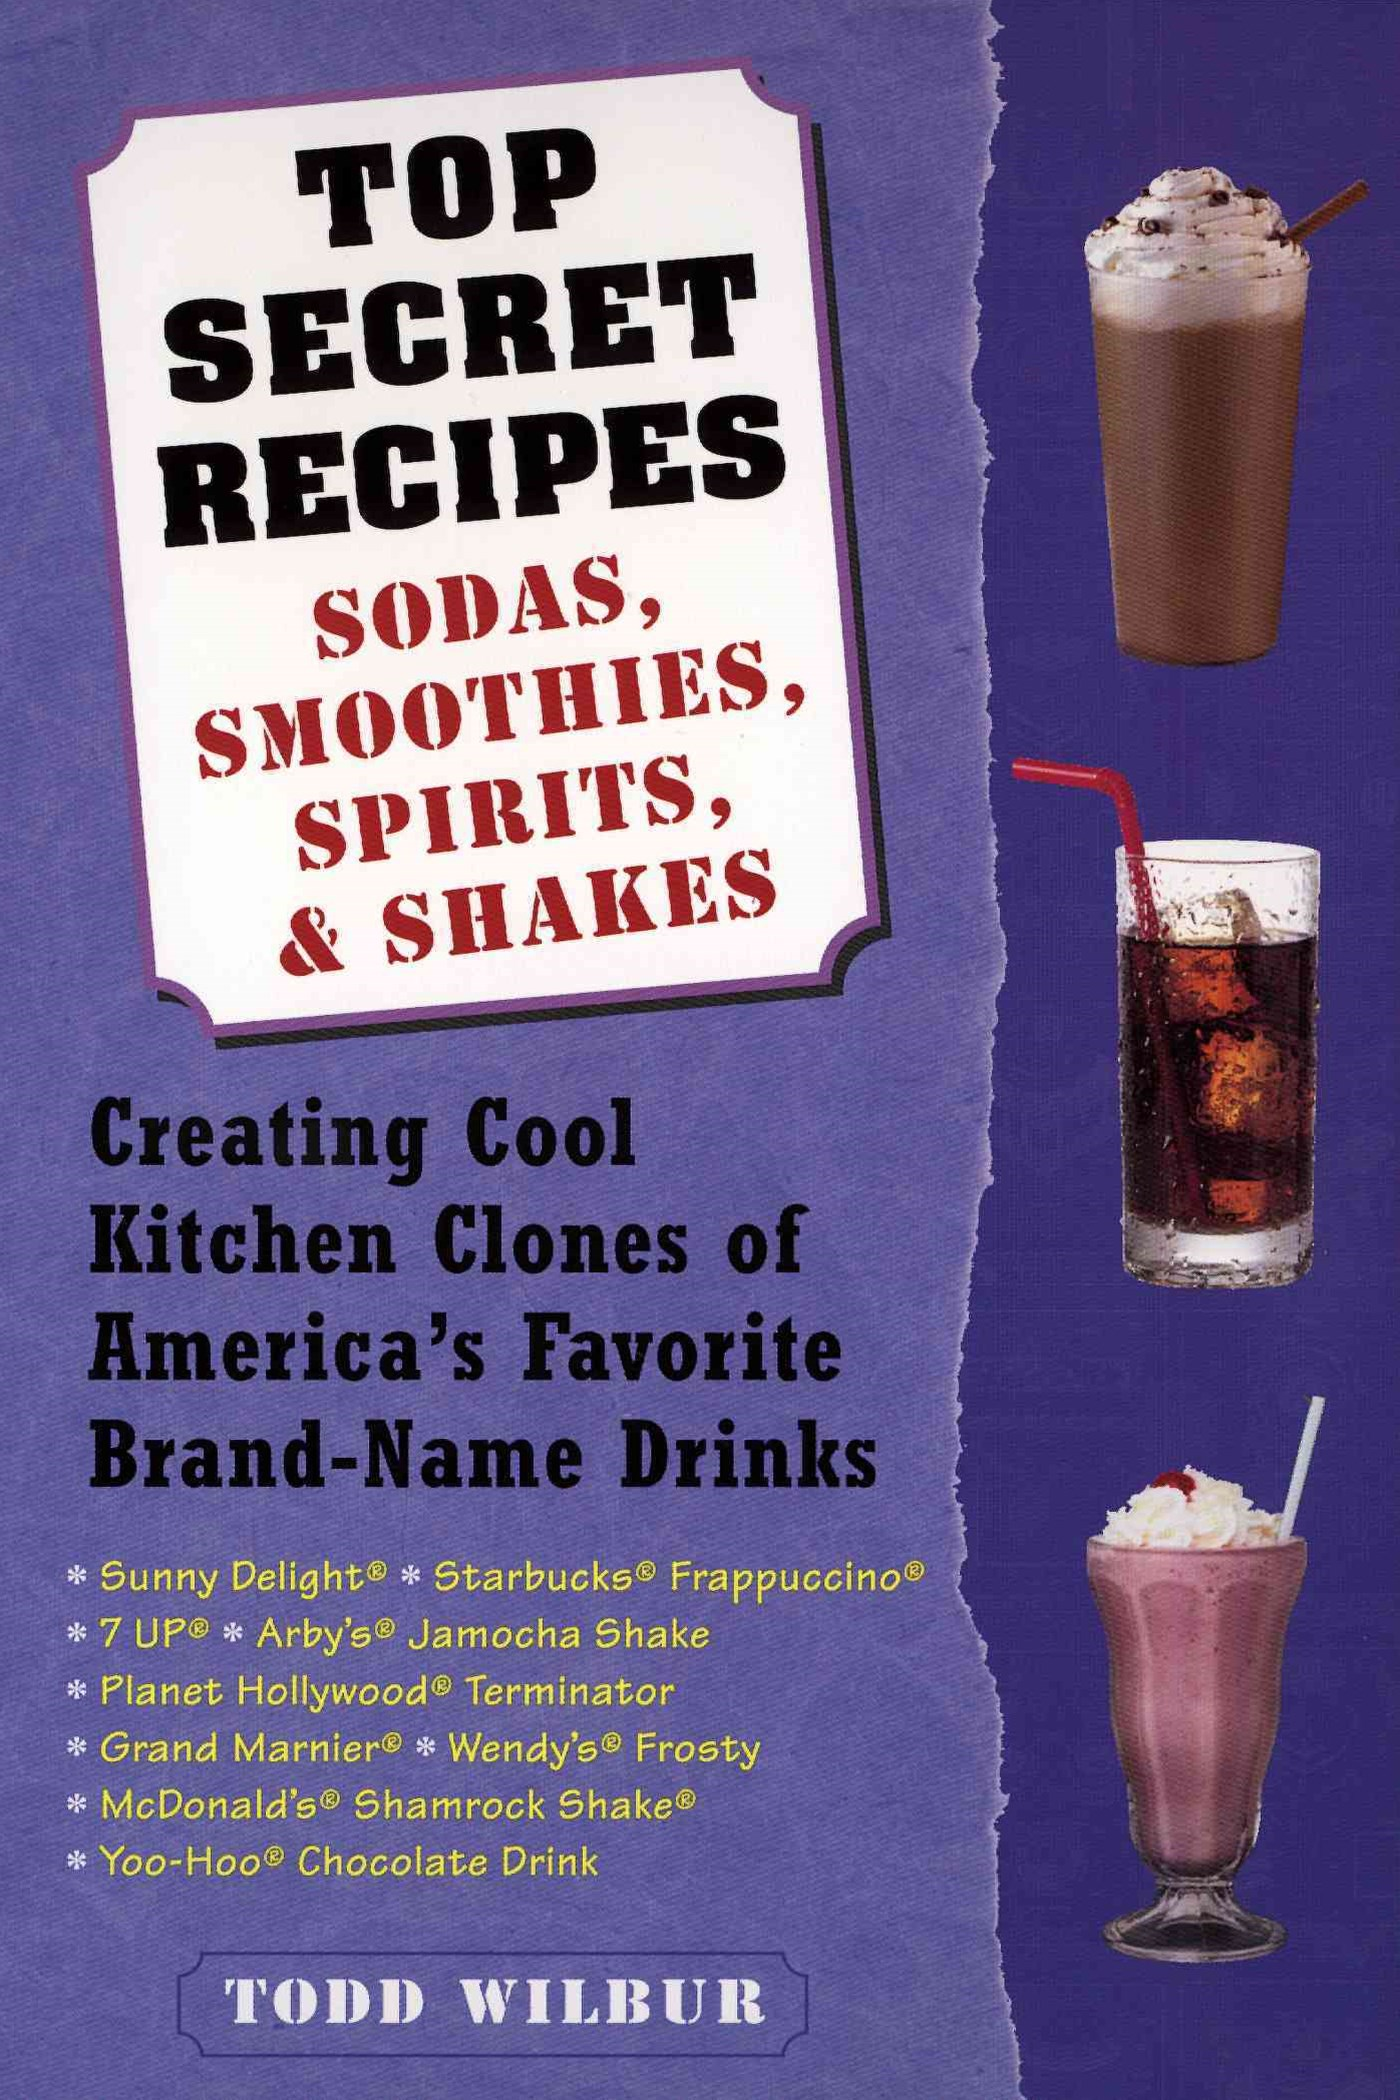 Top Secret Recipes - Sodas, Smoothies, Spirits and Shakes